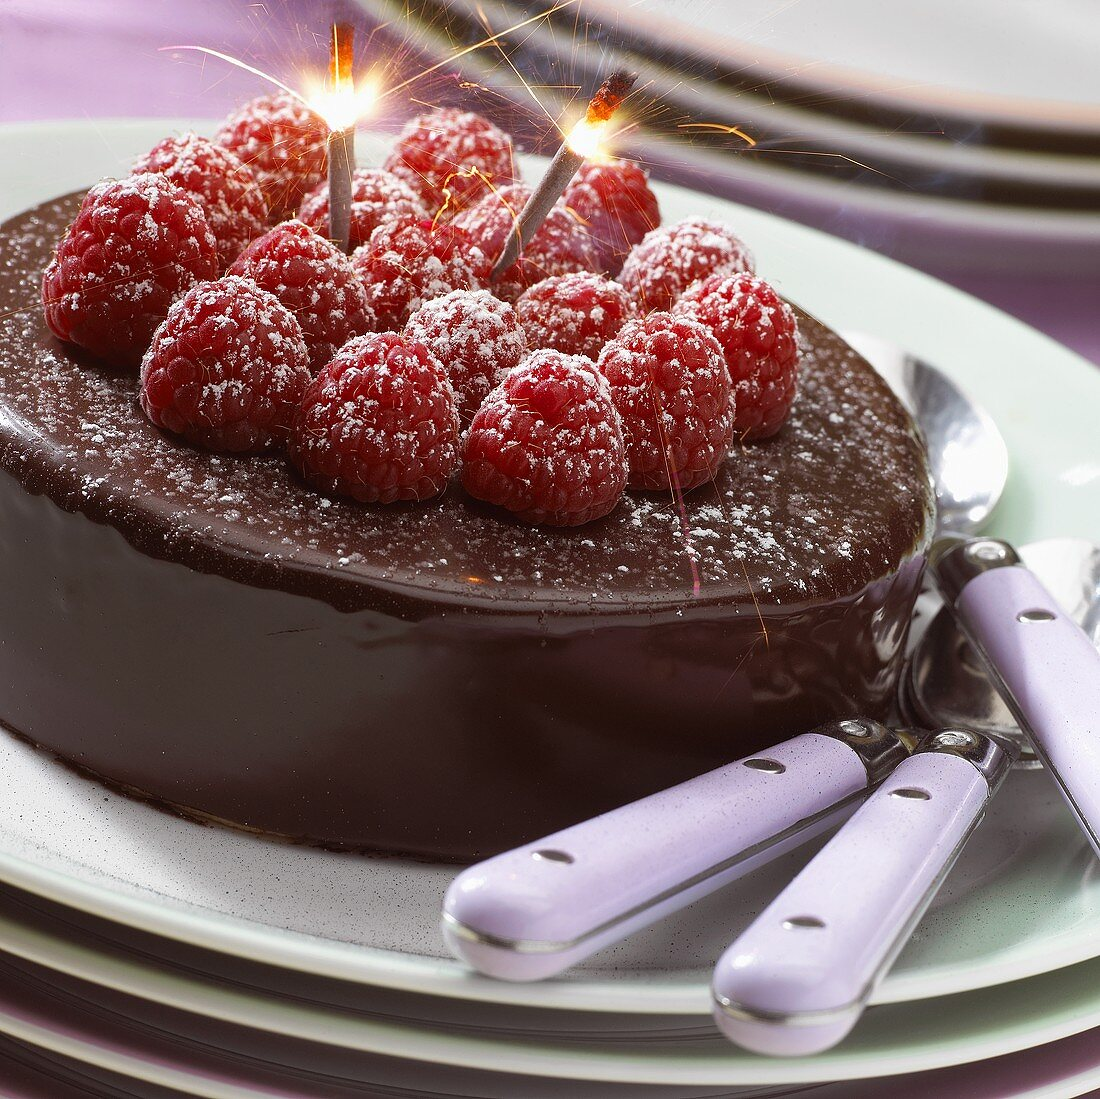 Chocolate cake with raspberries and sparklers